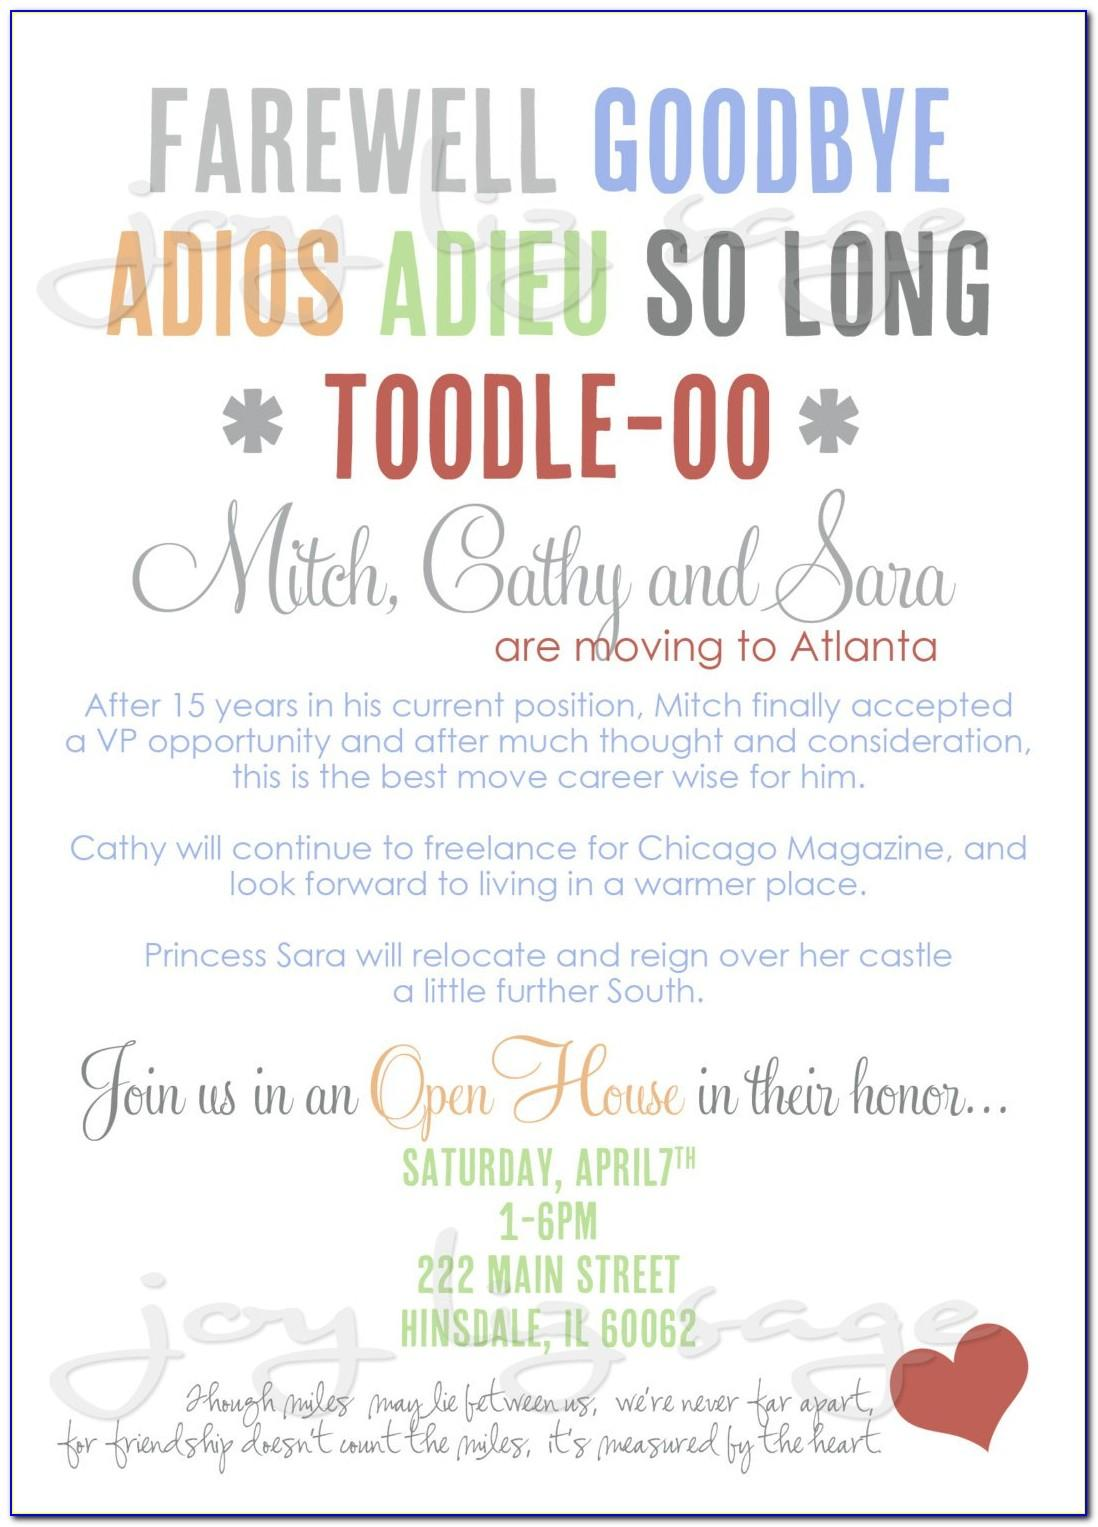 Going Away Party Email Invitation Template